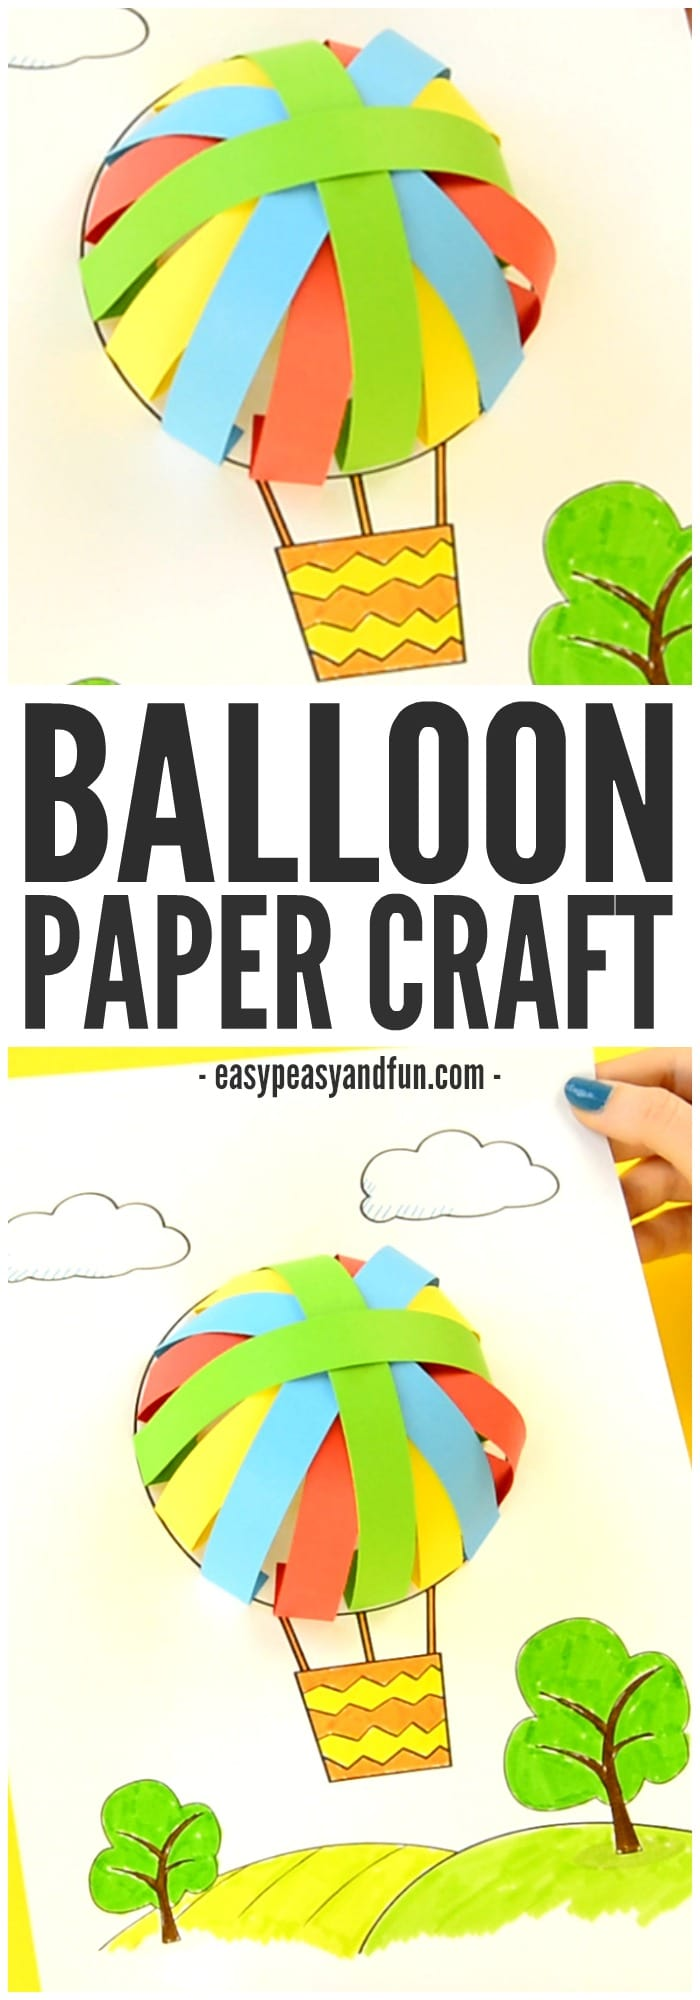 Adorable Printable Hot Air Balloon Paper Craft for Kids